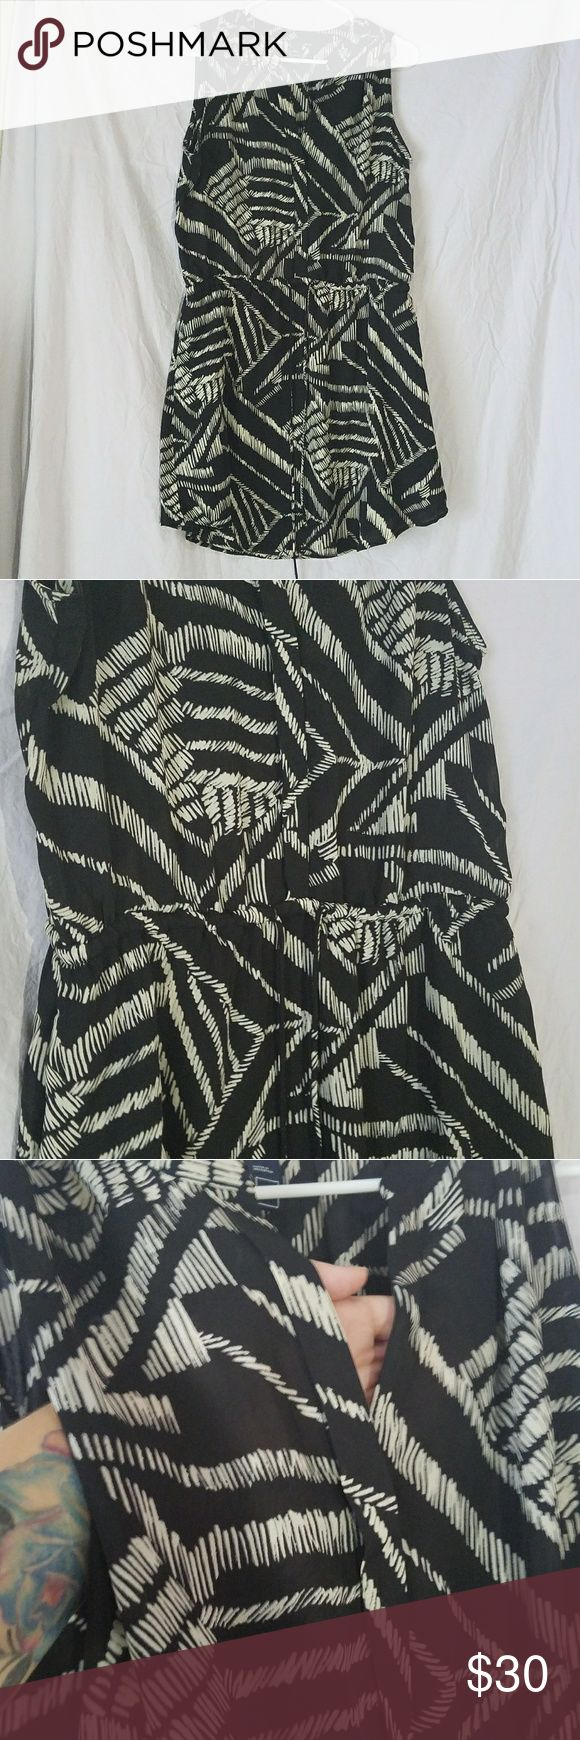 Black and white Gap dress WITH POCKETS This dress is gently used, still in very good condition. There is a small spot of fray in the middle back, as noted in picture. It has a V neck and a drawstring that ties in the front. Also, IT HAS POCKETS!! GAP Dresses